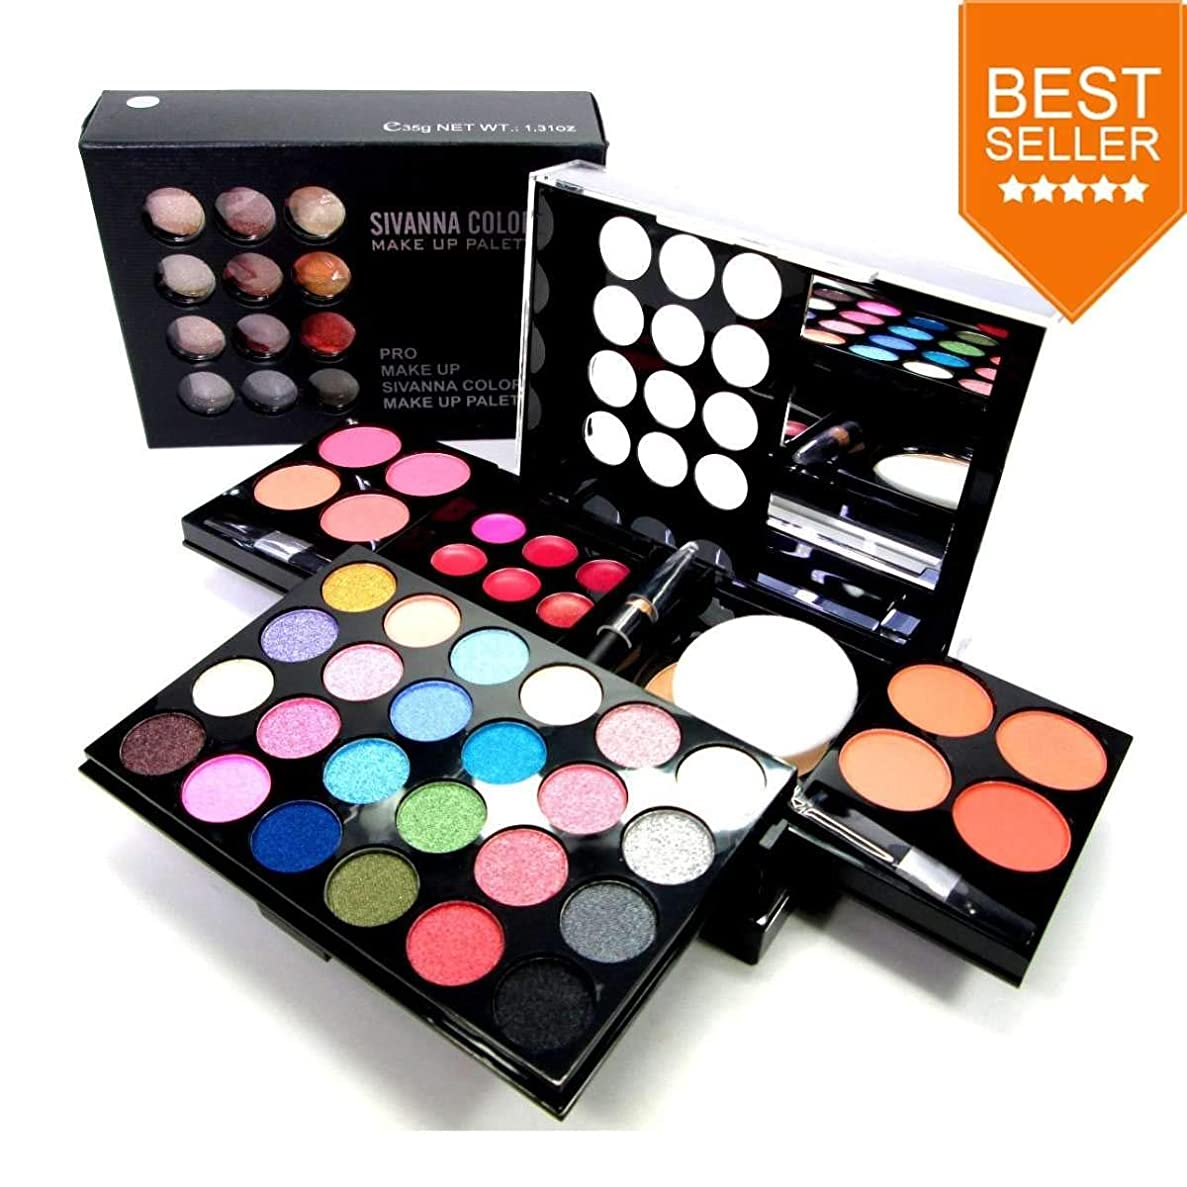 首出席極地#2 Sivanna Colors PRO MAKE UP PALETTE DK212 3 in 1 Make-up Palette Set